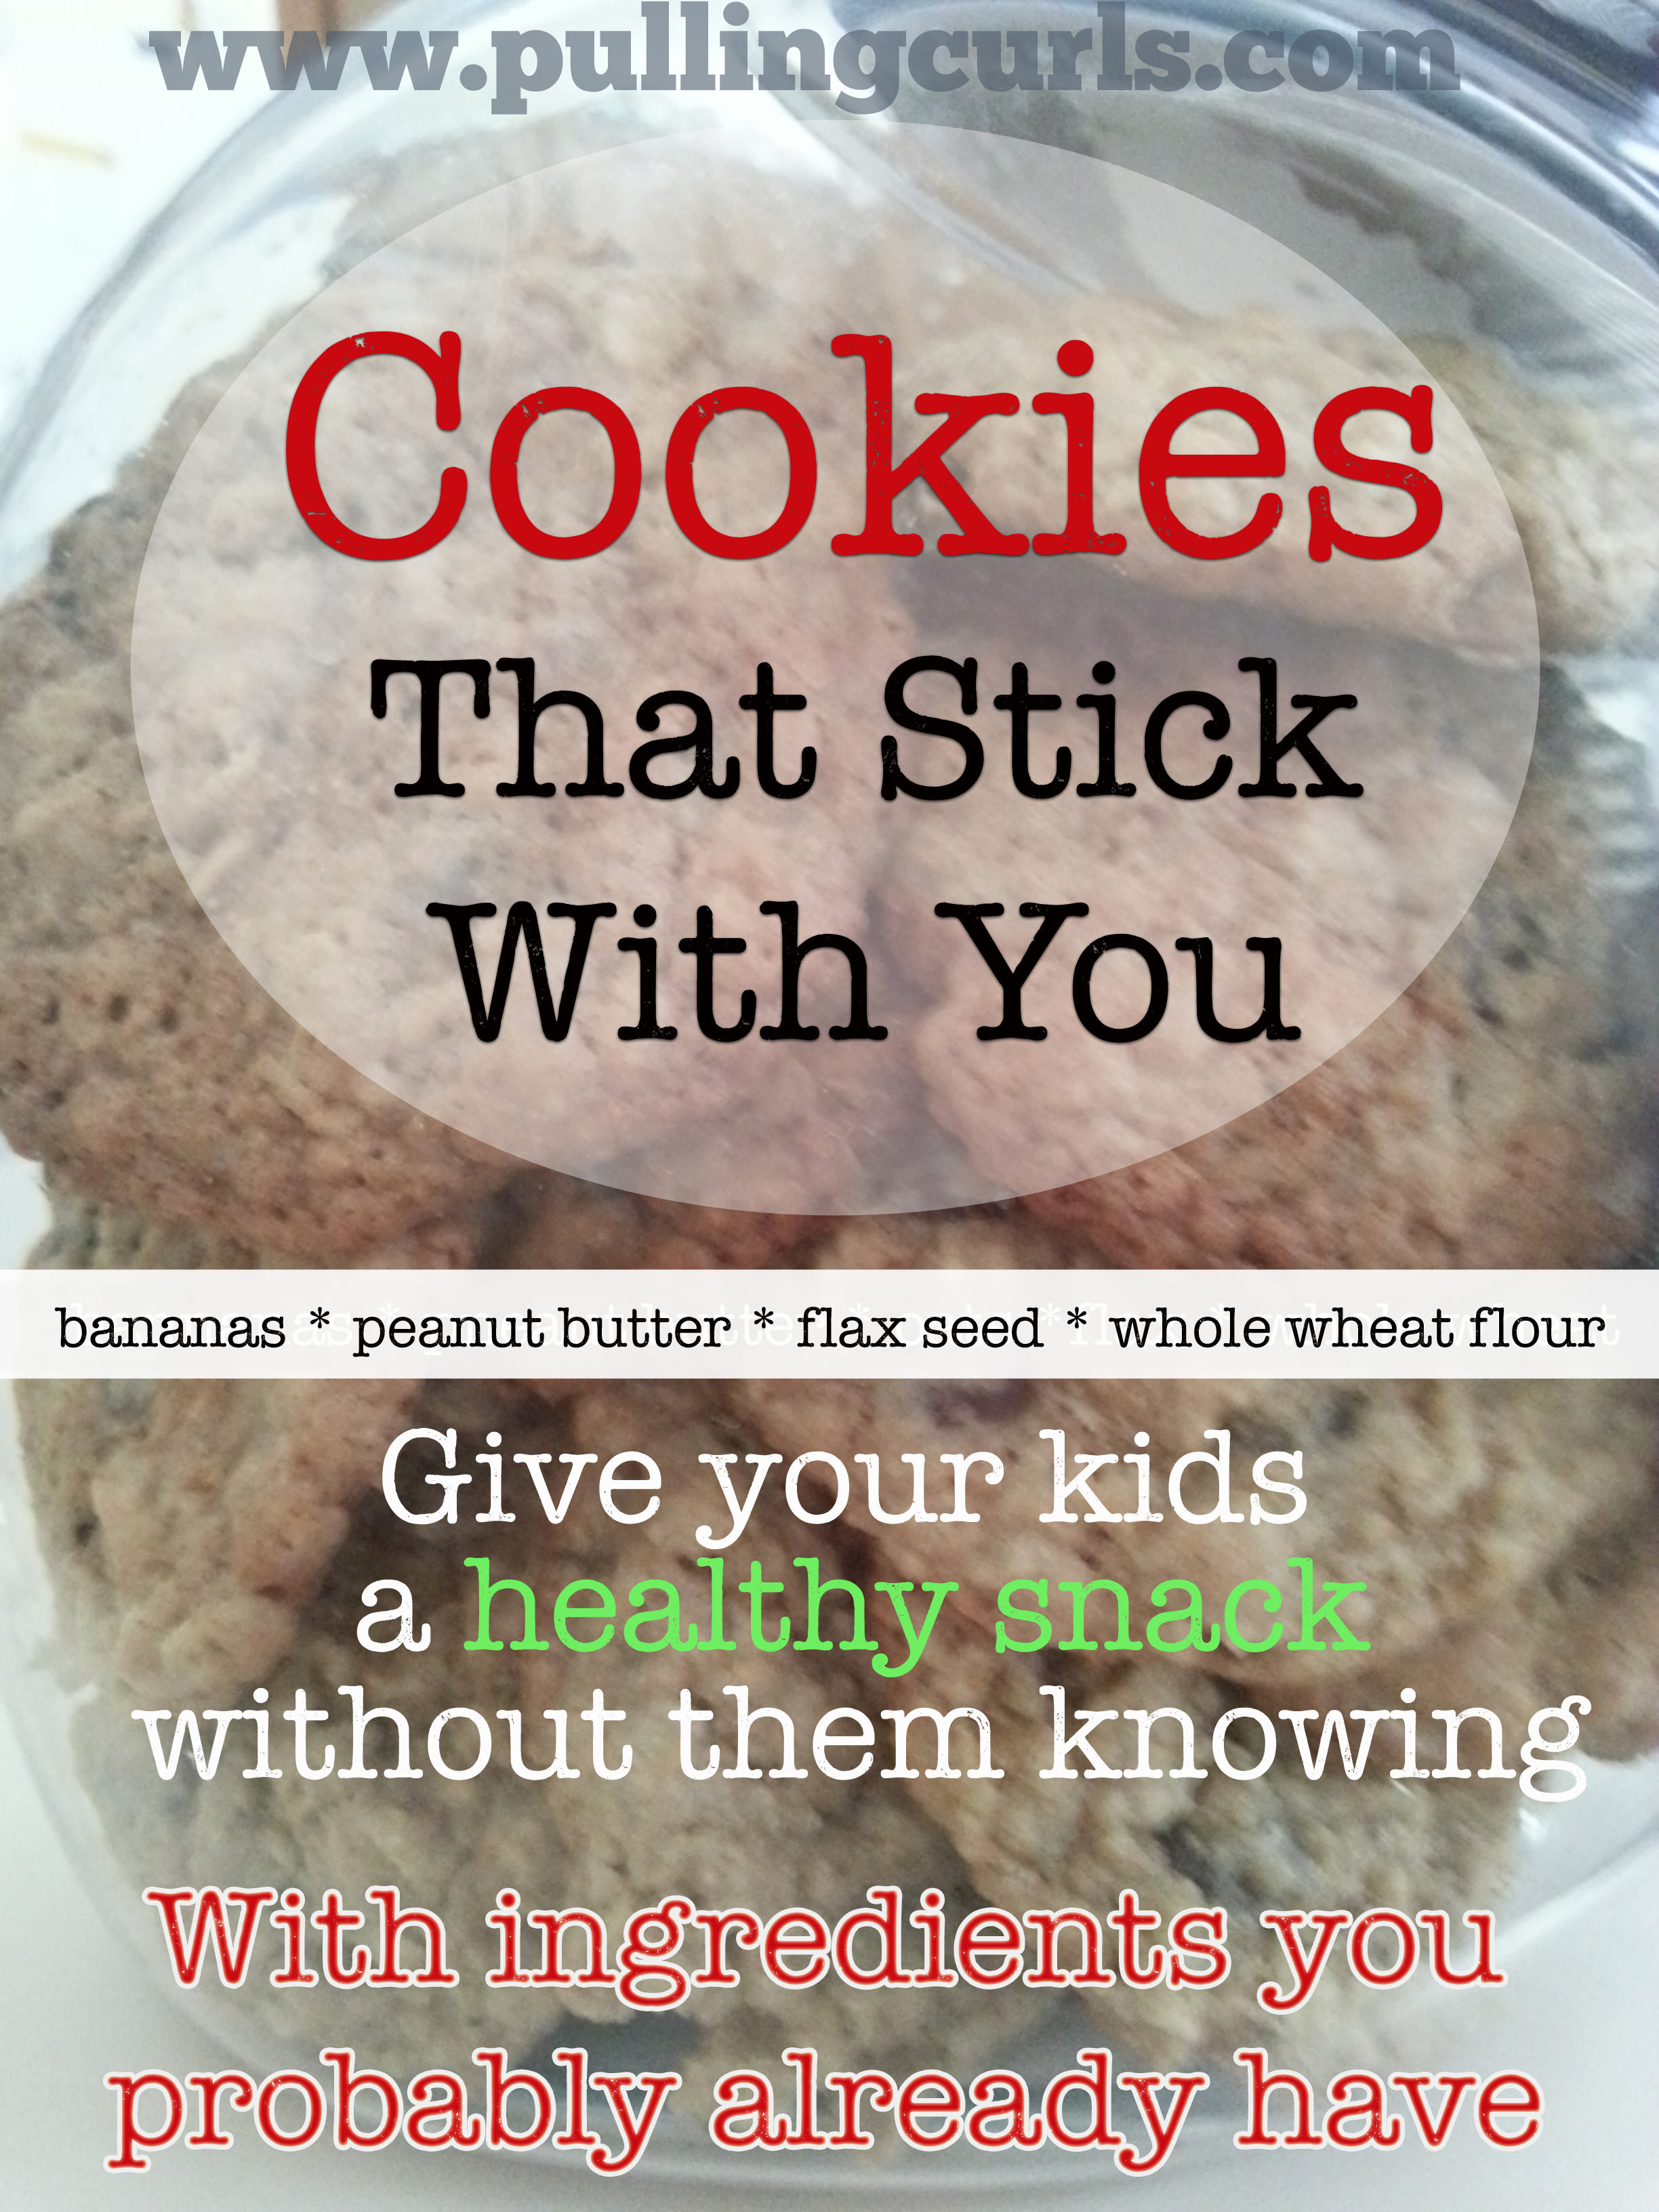 Healthy Cookie Recipes | oatmeal | banana | peanut butter | for kids